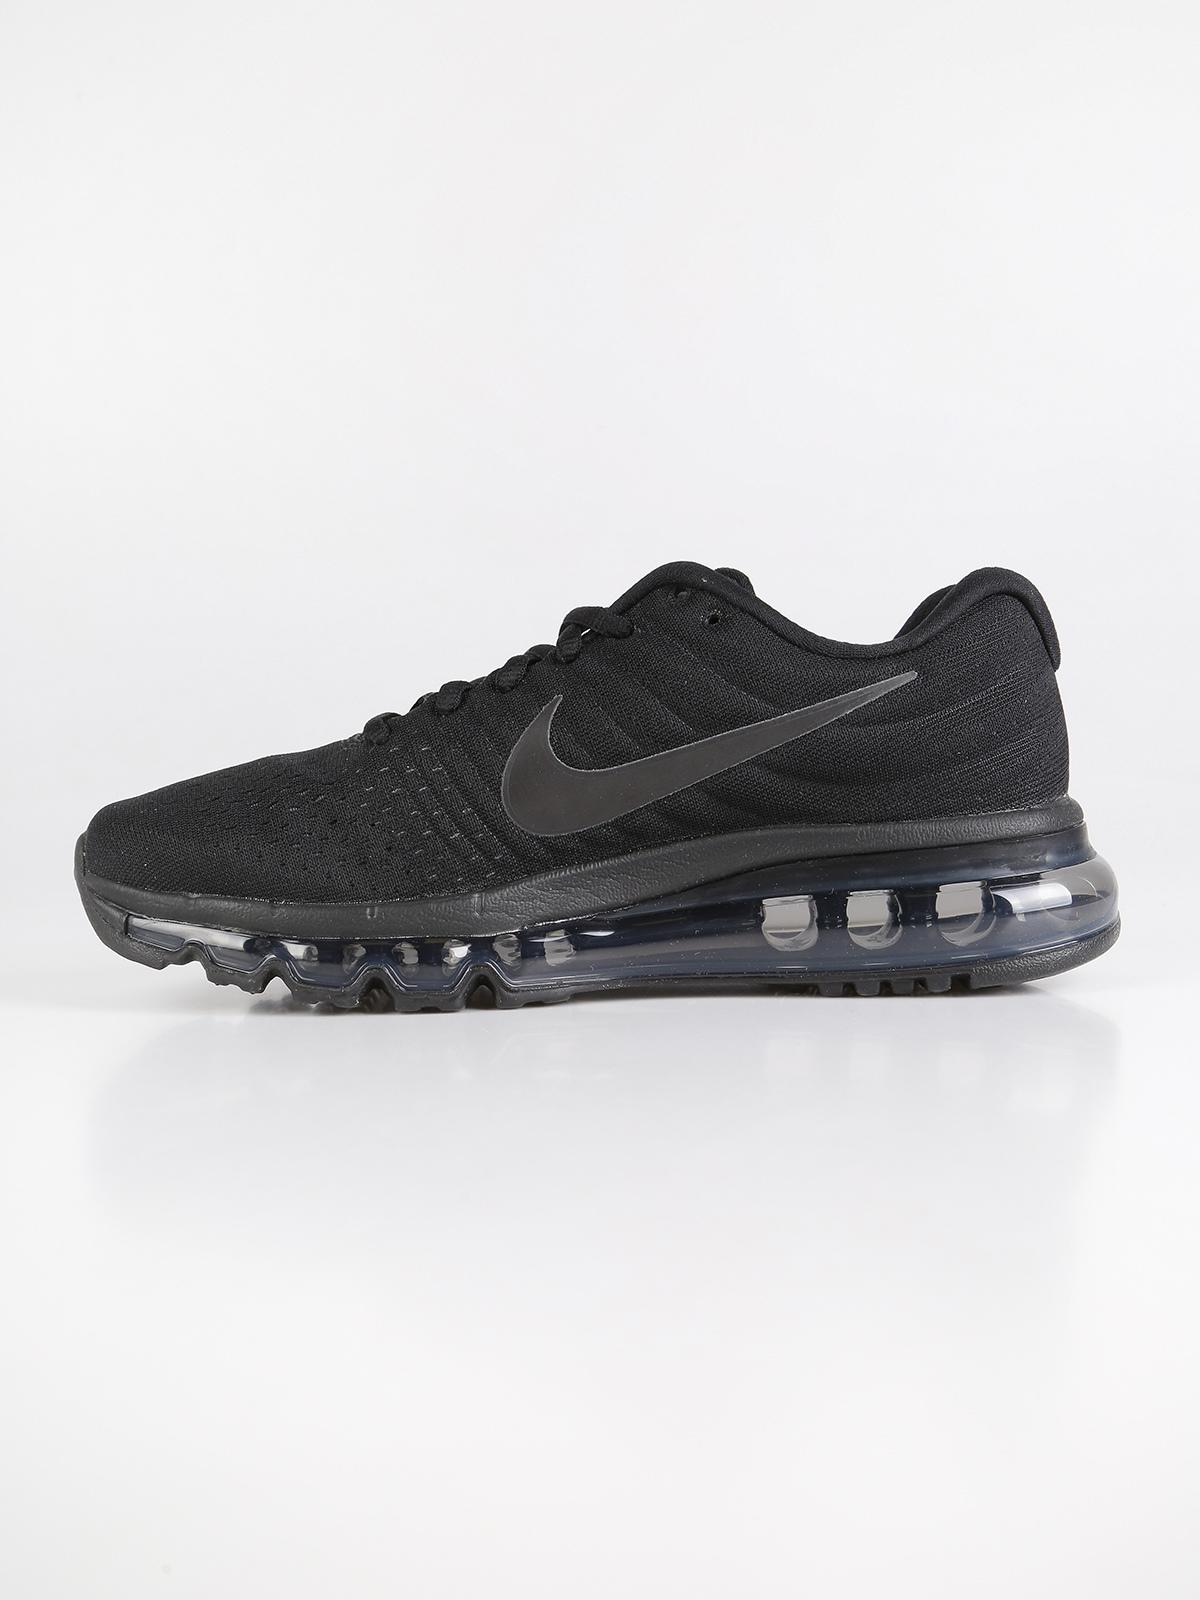 Nike Air Max 2017 (GS) - Sneakers sportive nere donna: Sneakers Basse